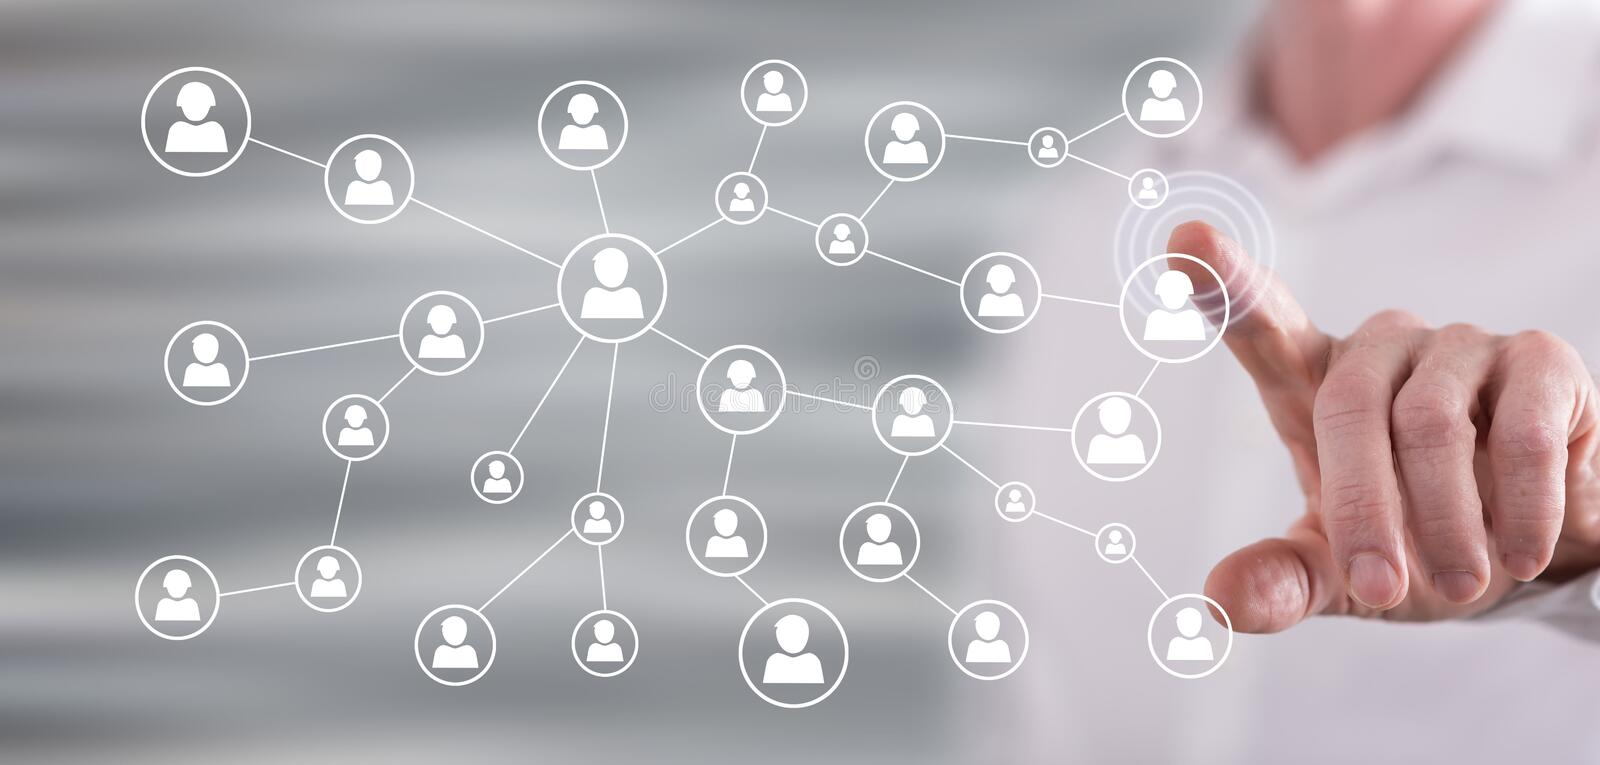 Man touching a social media network stock images